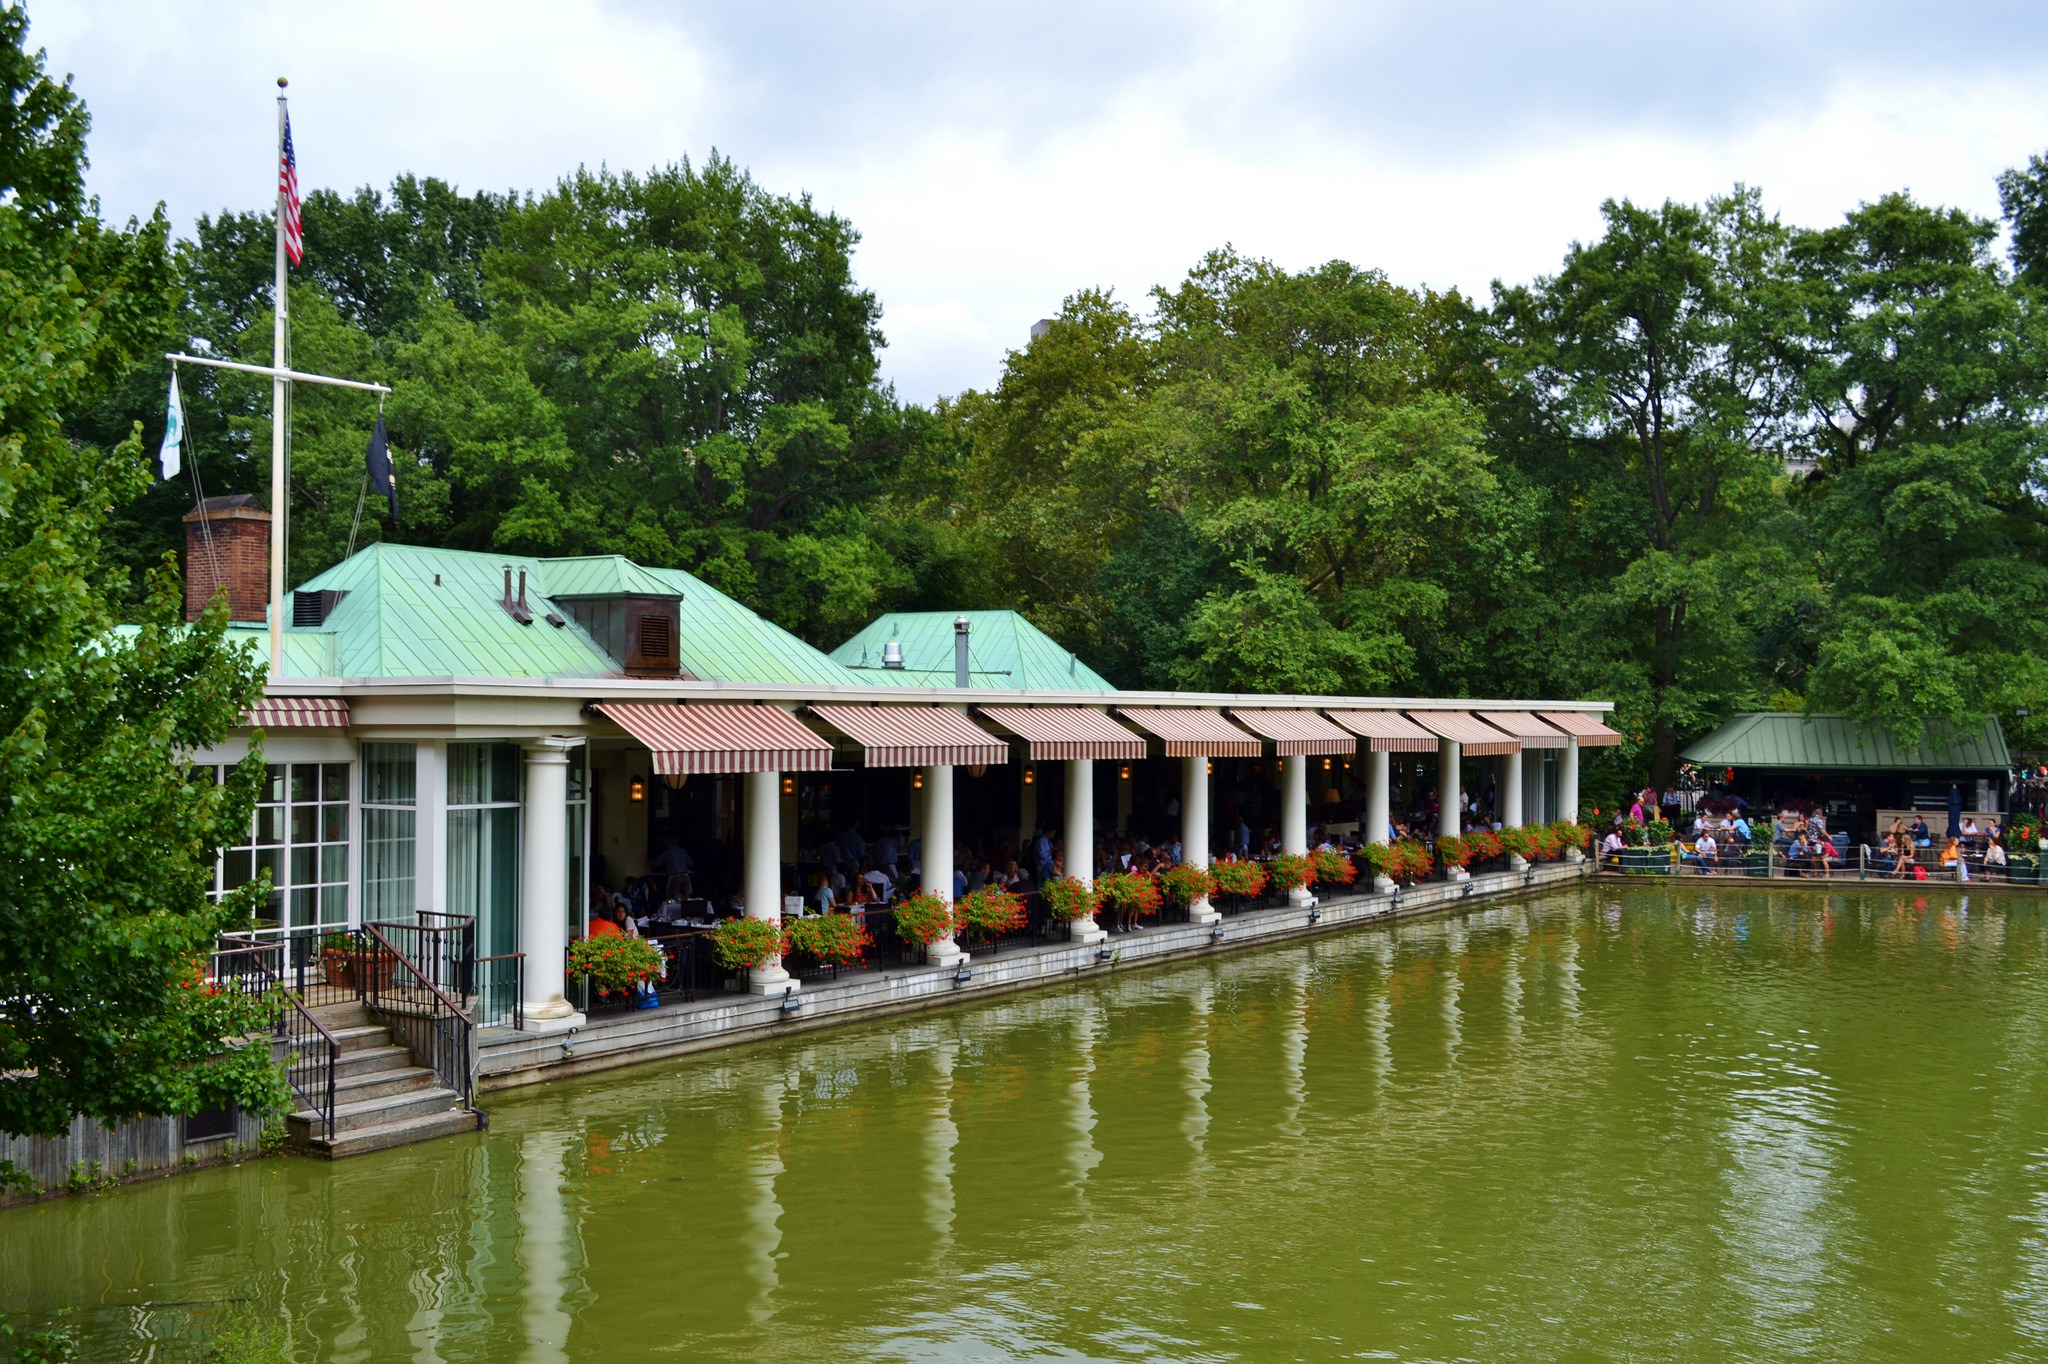 The Loeb Boathouse Central Park 2